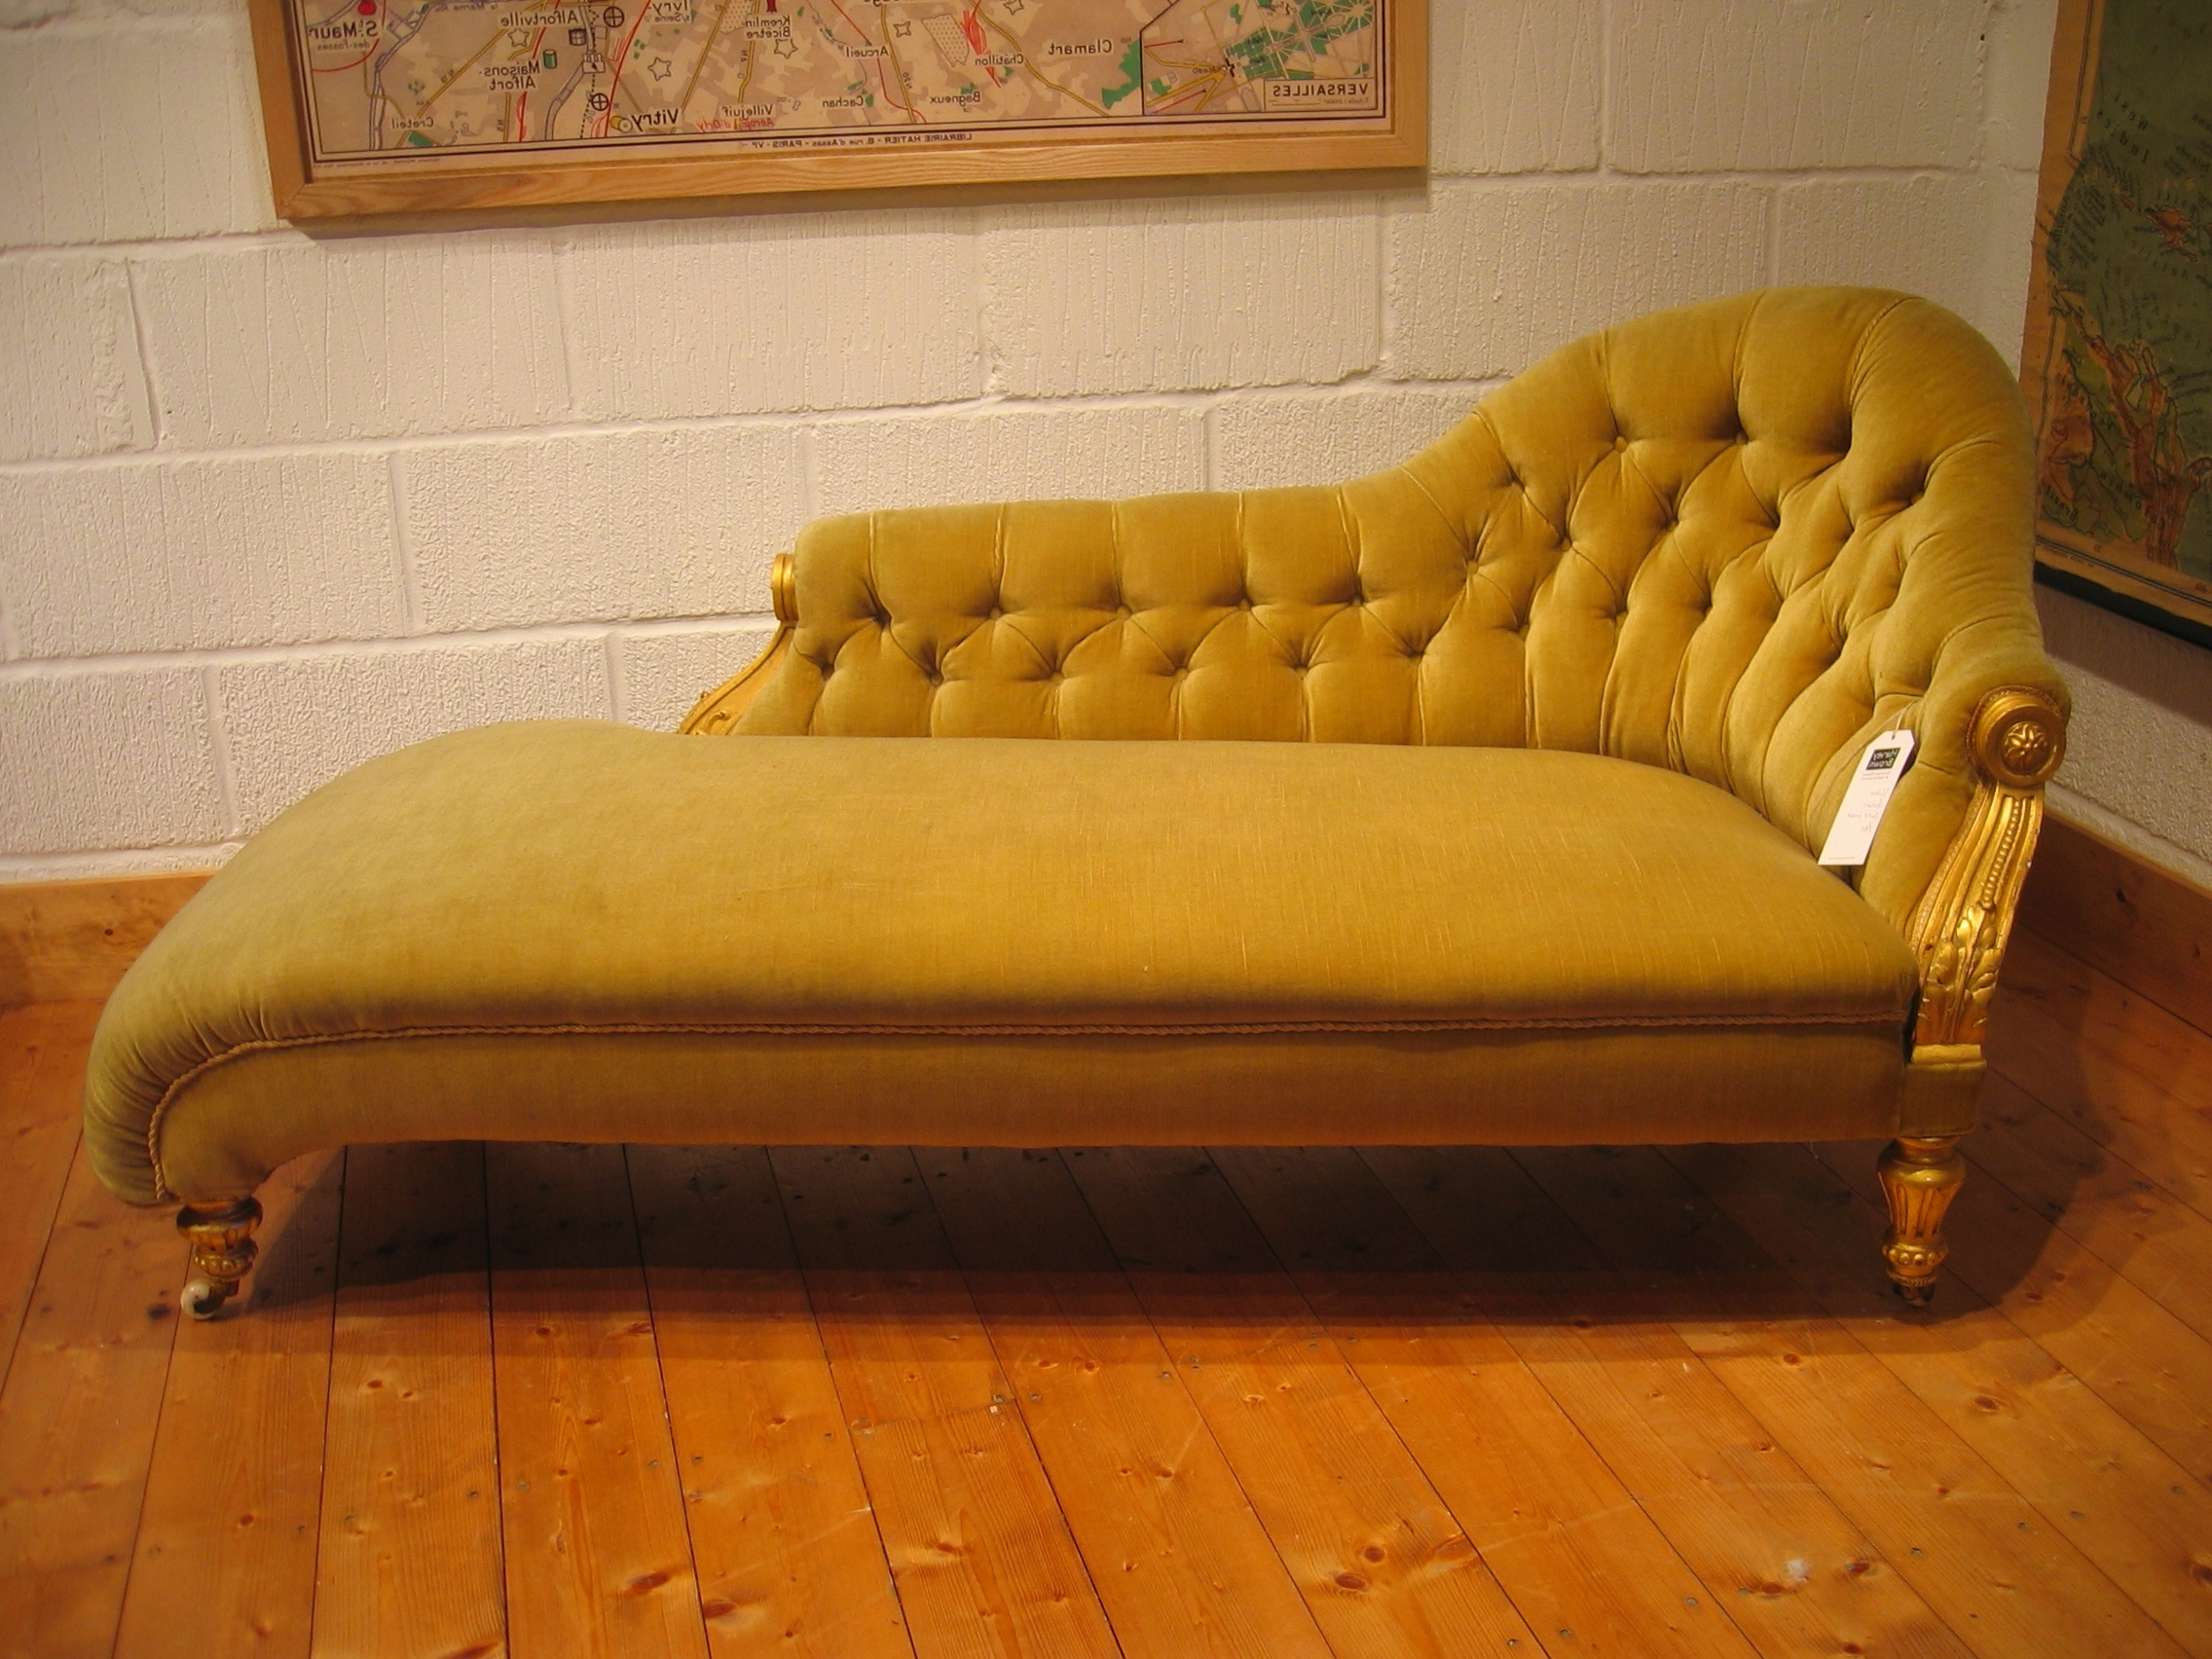 Favorite Yellow Color Antique Victorian Chaise Lounge Sofa Bed With Wooden Inside Vintage Chaise Lounges (View 13 of 15)